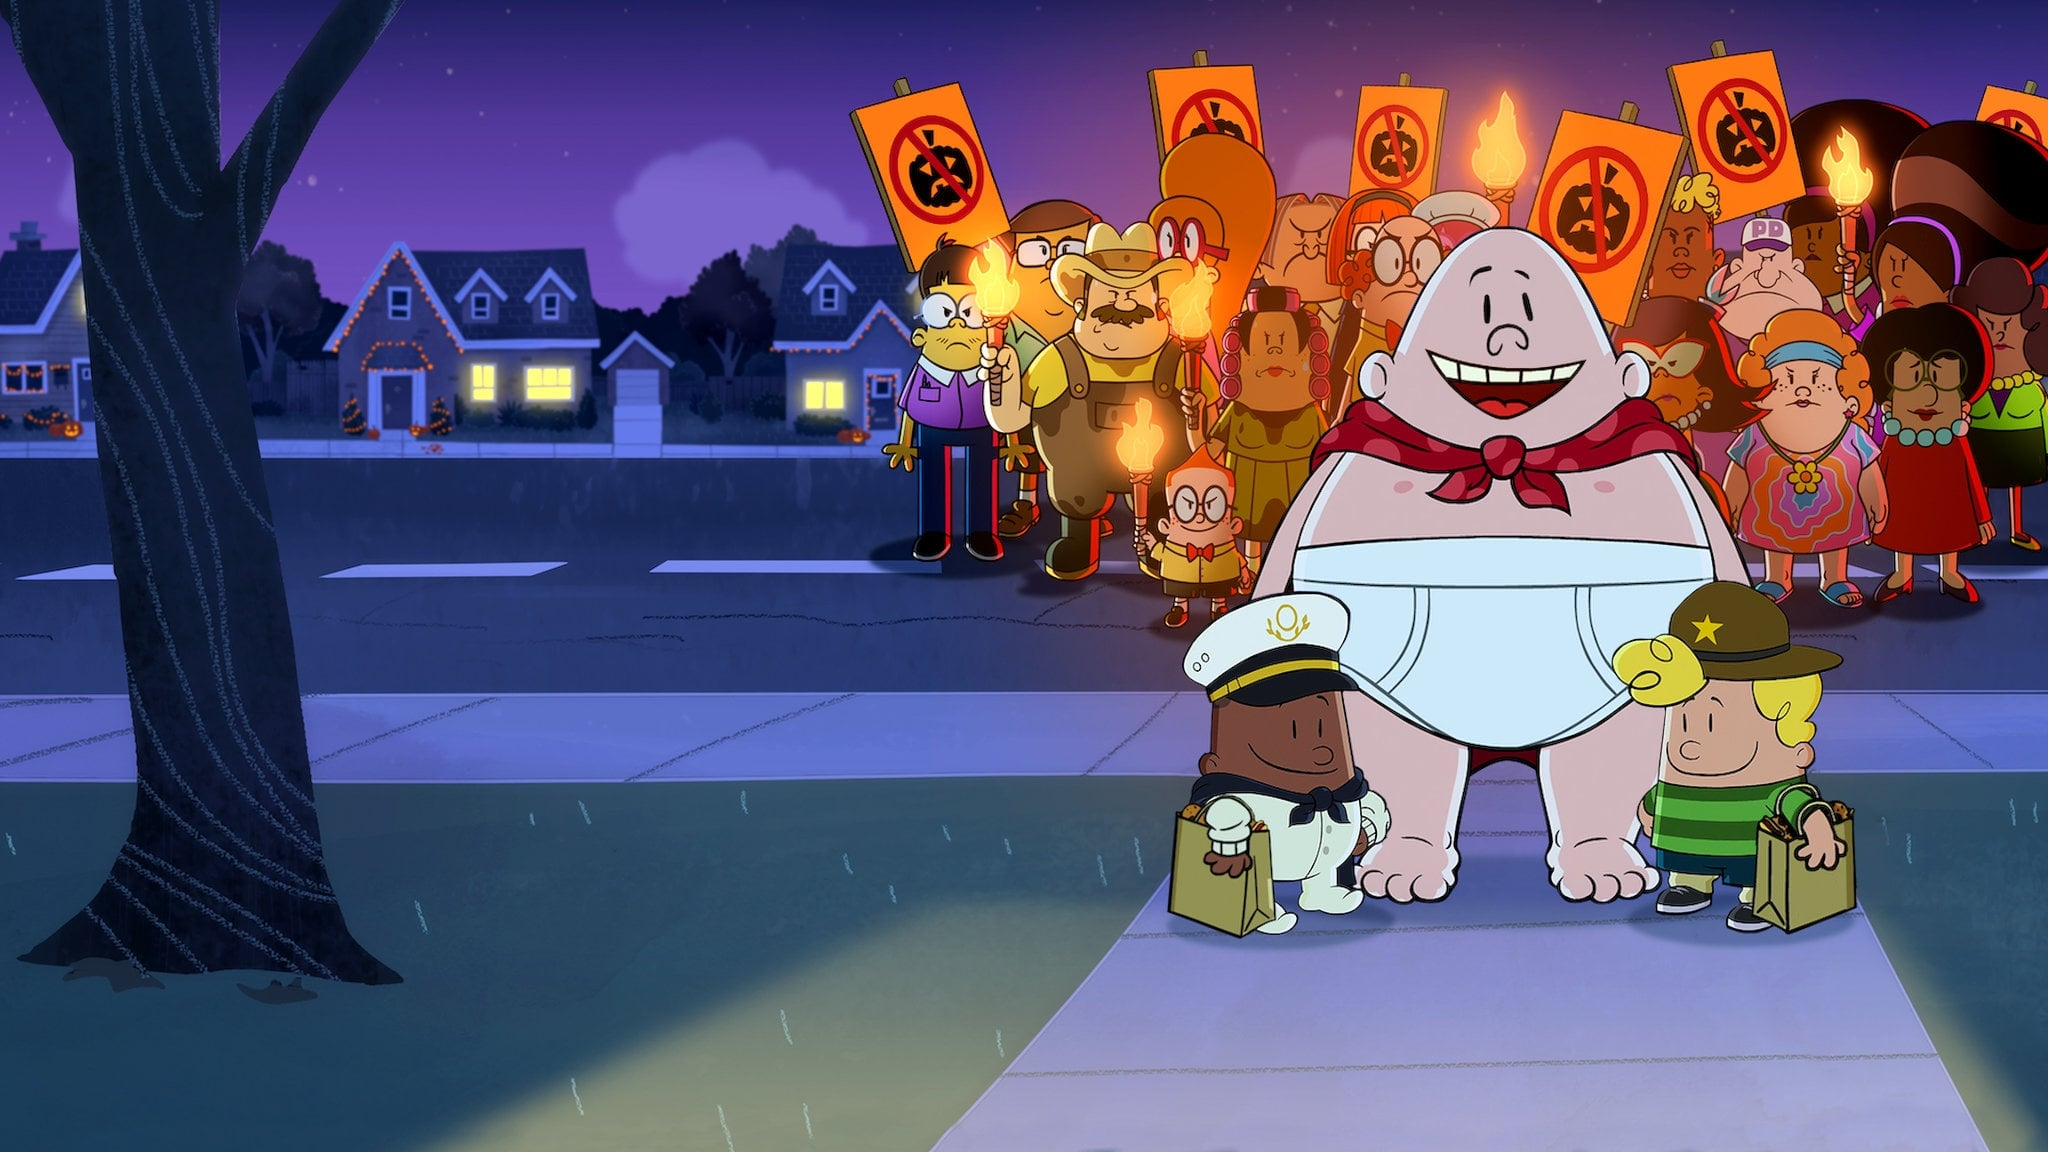 VER The Spooky Tale of Captain Underpants Hack-a-ween (2019) pelicula completa en español latino 720p